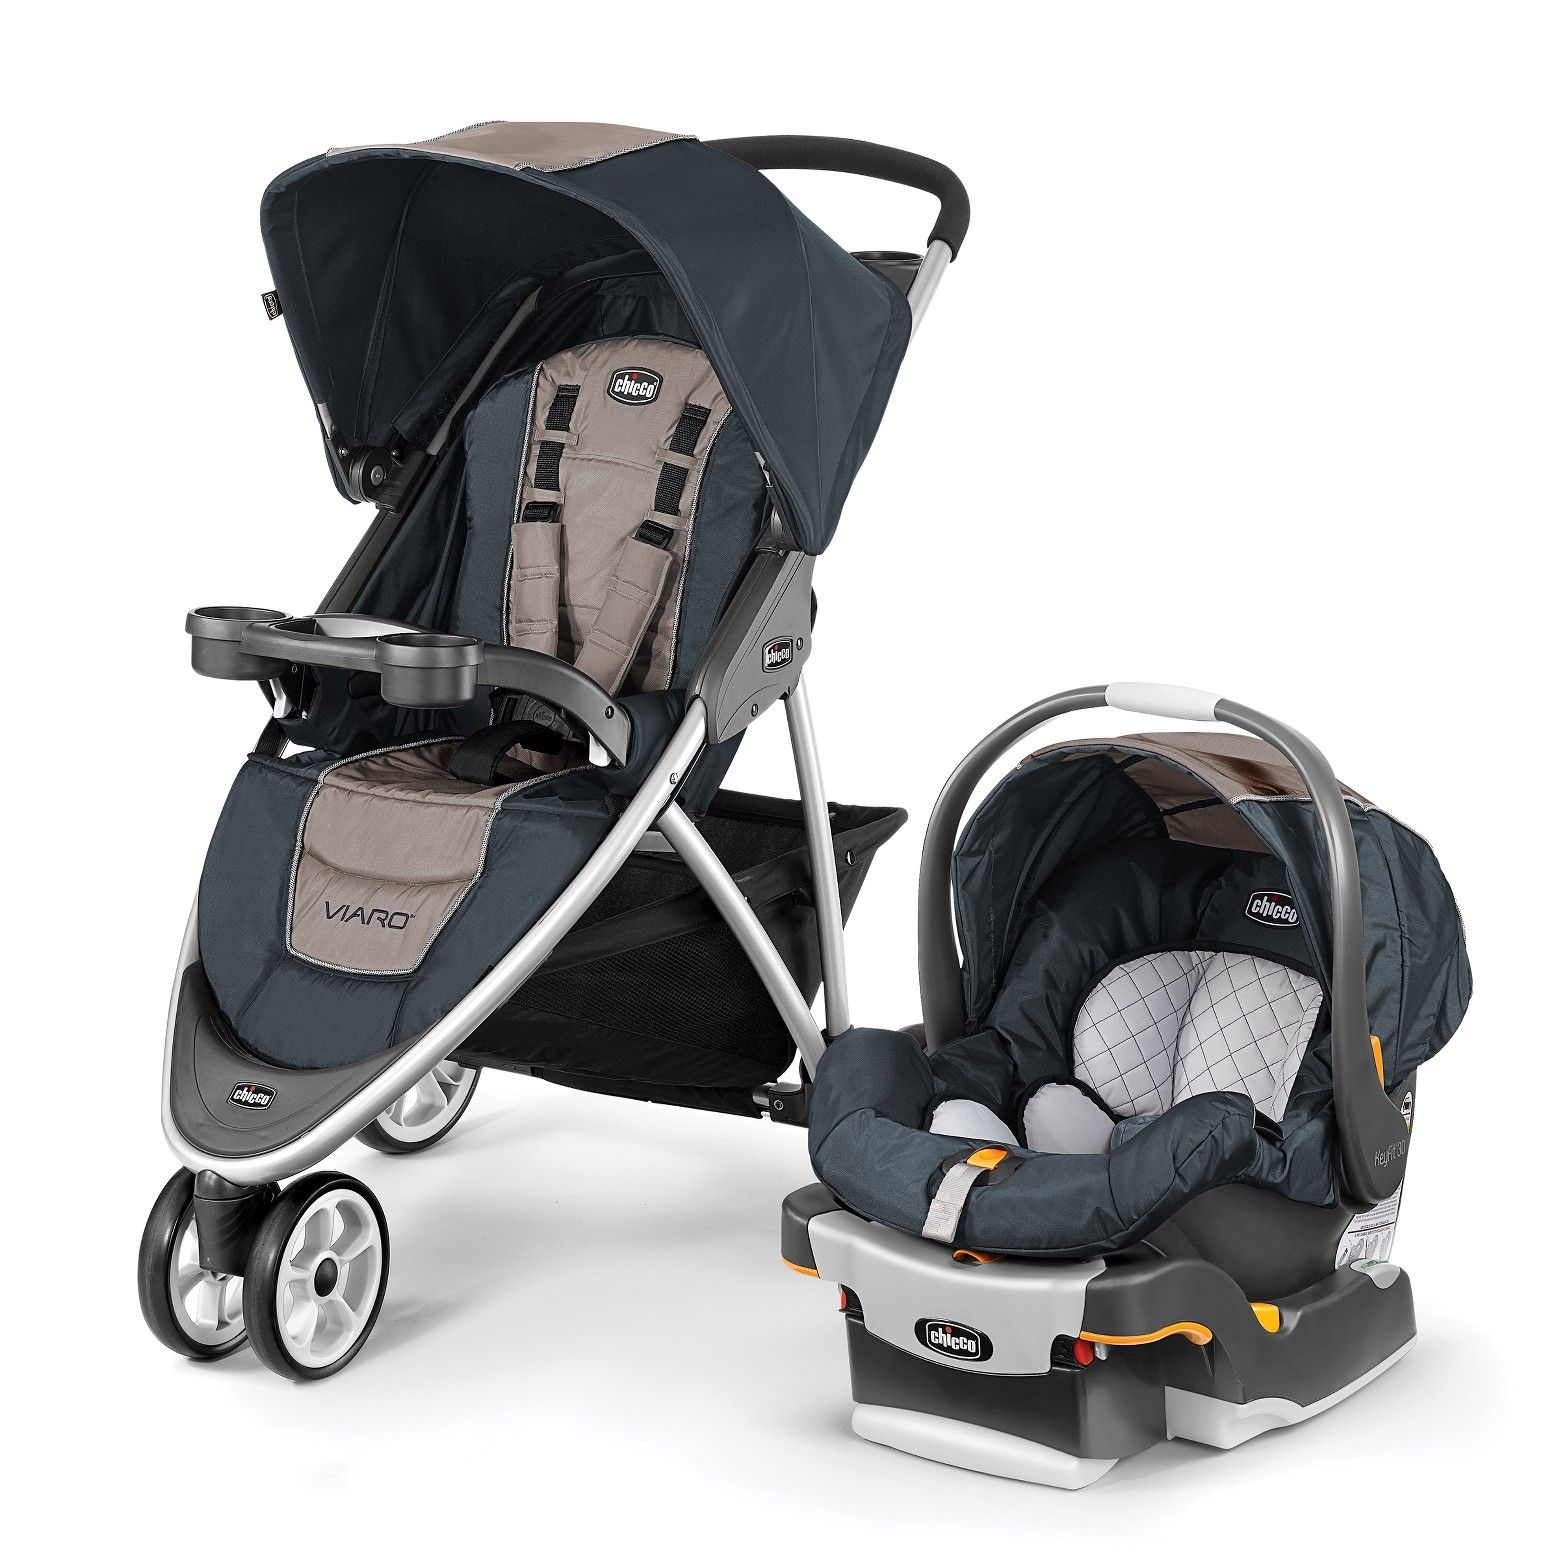 Chicco Viaro Travel System in 2020 Travel system